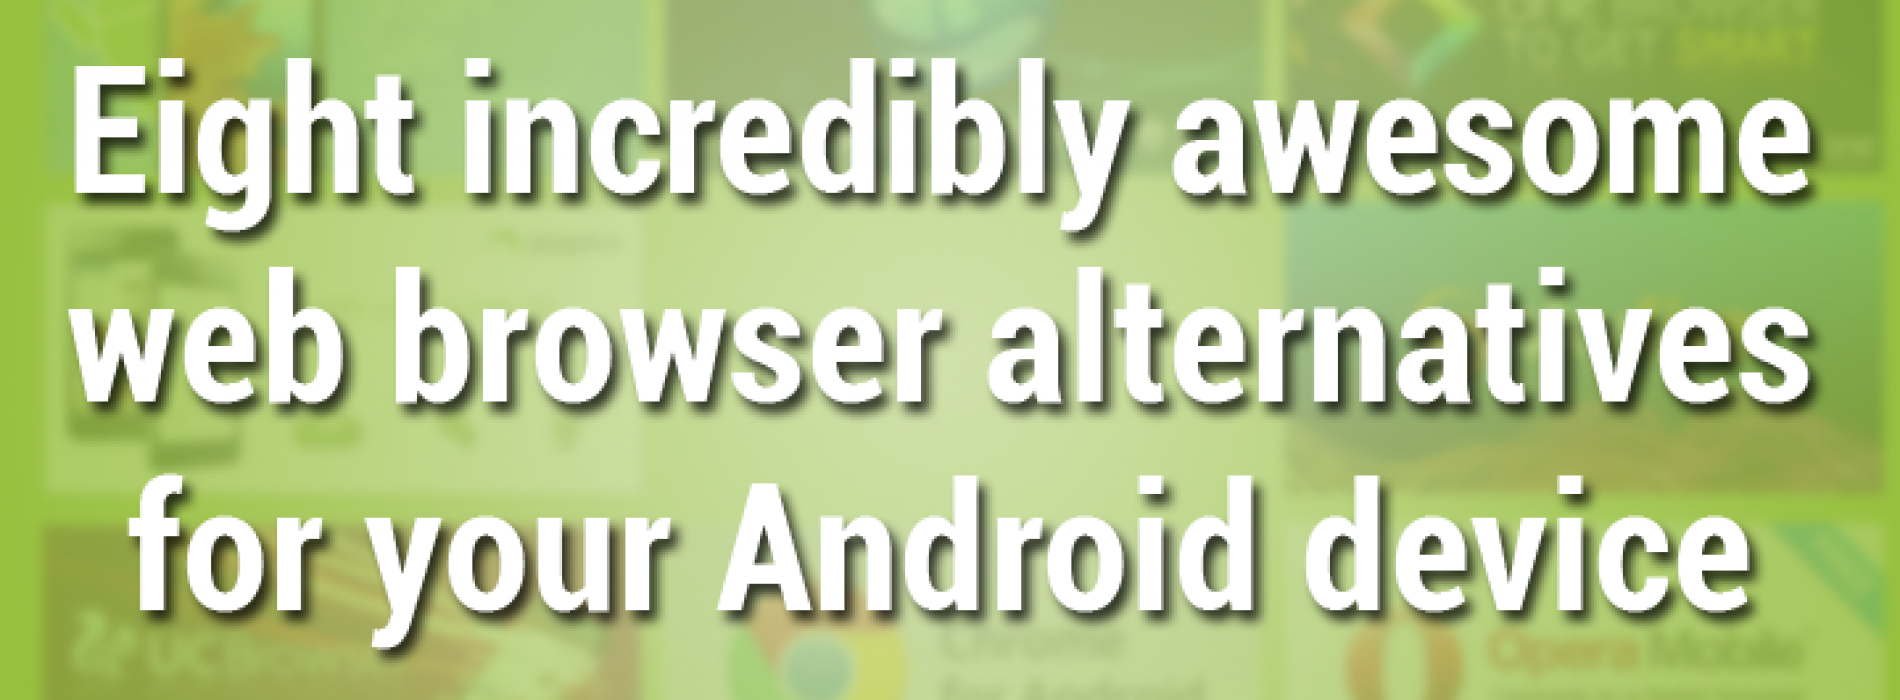 Eight incredibly awesome web browser alternatives for Android